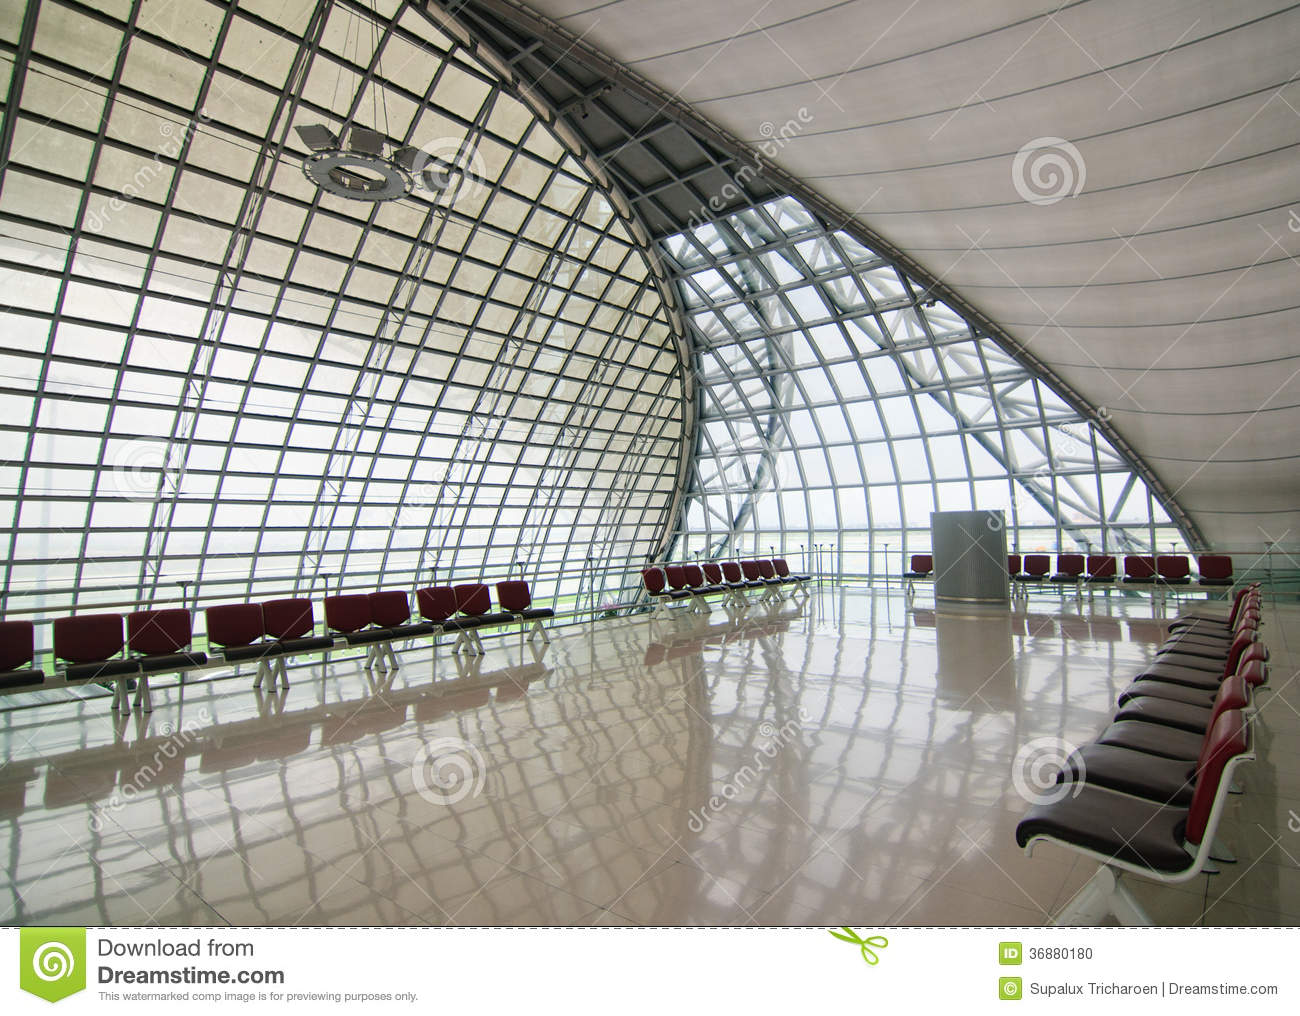 Download Spazio Di Resto In Aeroporto Fotografia Stock - Immagine di posto, asia: 36880180